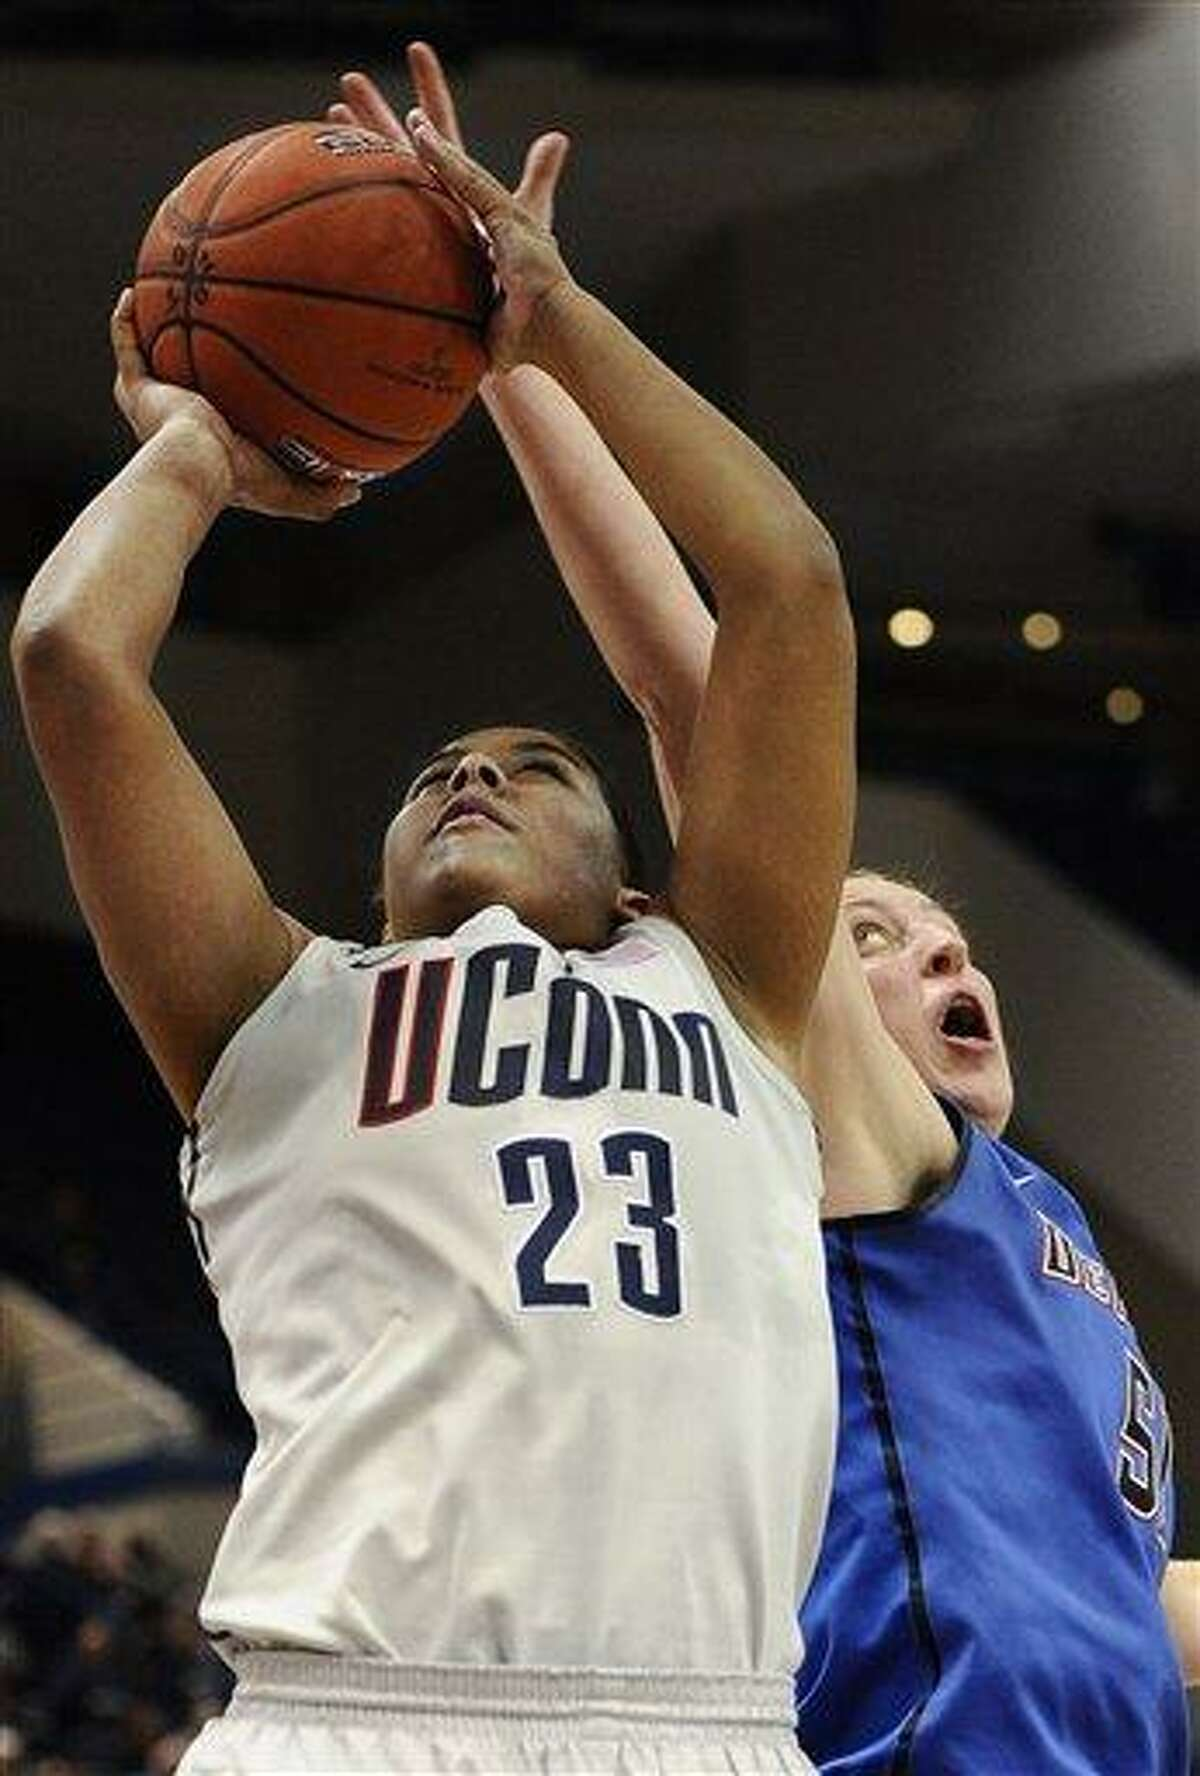 Connecticut's Kaleena Mosqueda-Lewis is guarded by DePaul's Katherine Harry, right in the second half of an NCAA college basketball game in the quarterfinals of the Big East Conference women's tournament in Hartford, Conn in Hartford, Conn., Sunday, March 10, 2013. Connecticut won 94-61. (AP Photo/Jessica Hill)